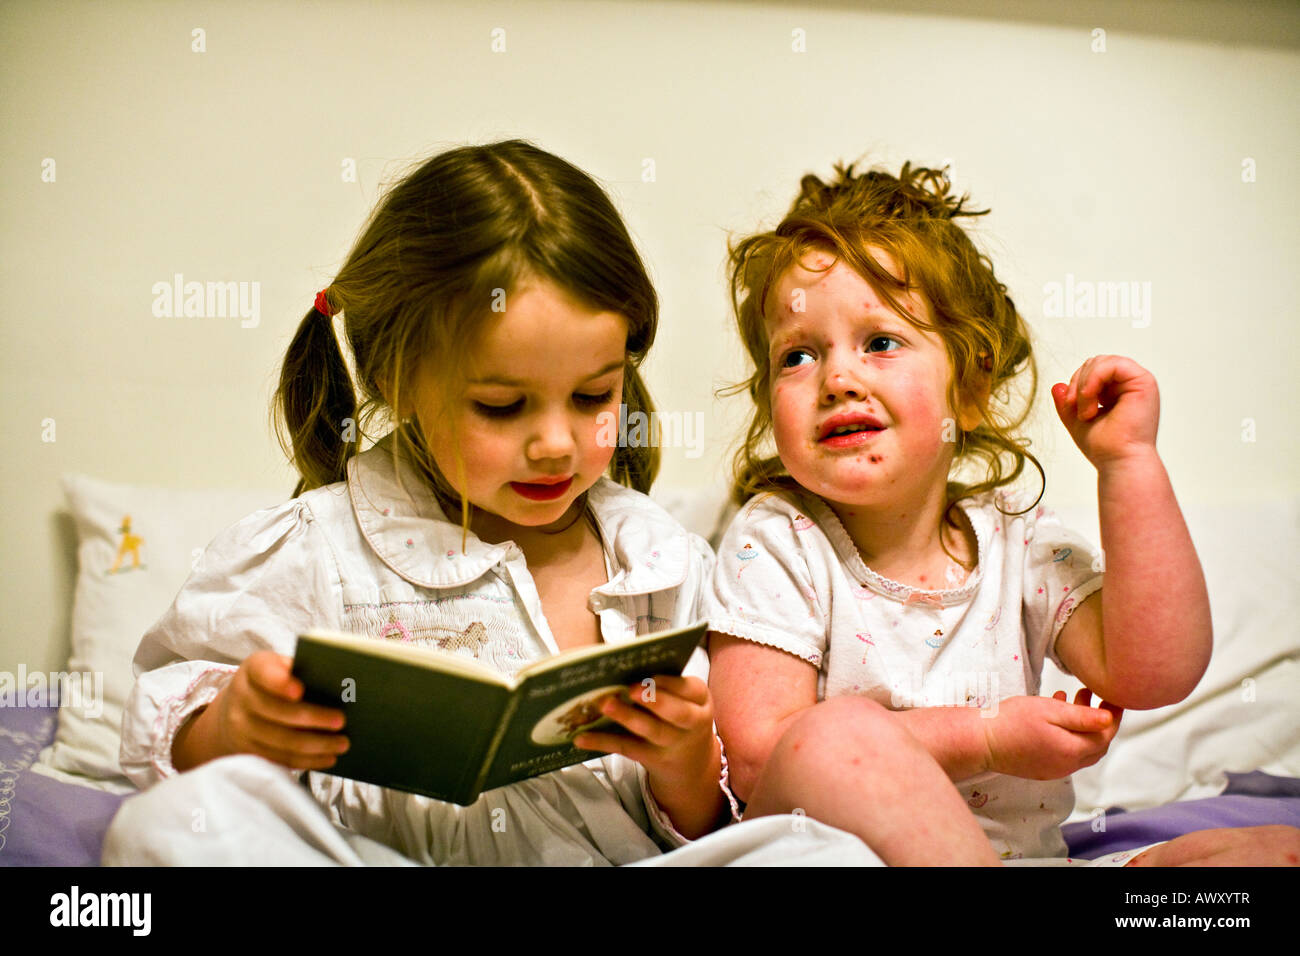 three year old child with chicken pox and her healthy four year old sister - Stock Image